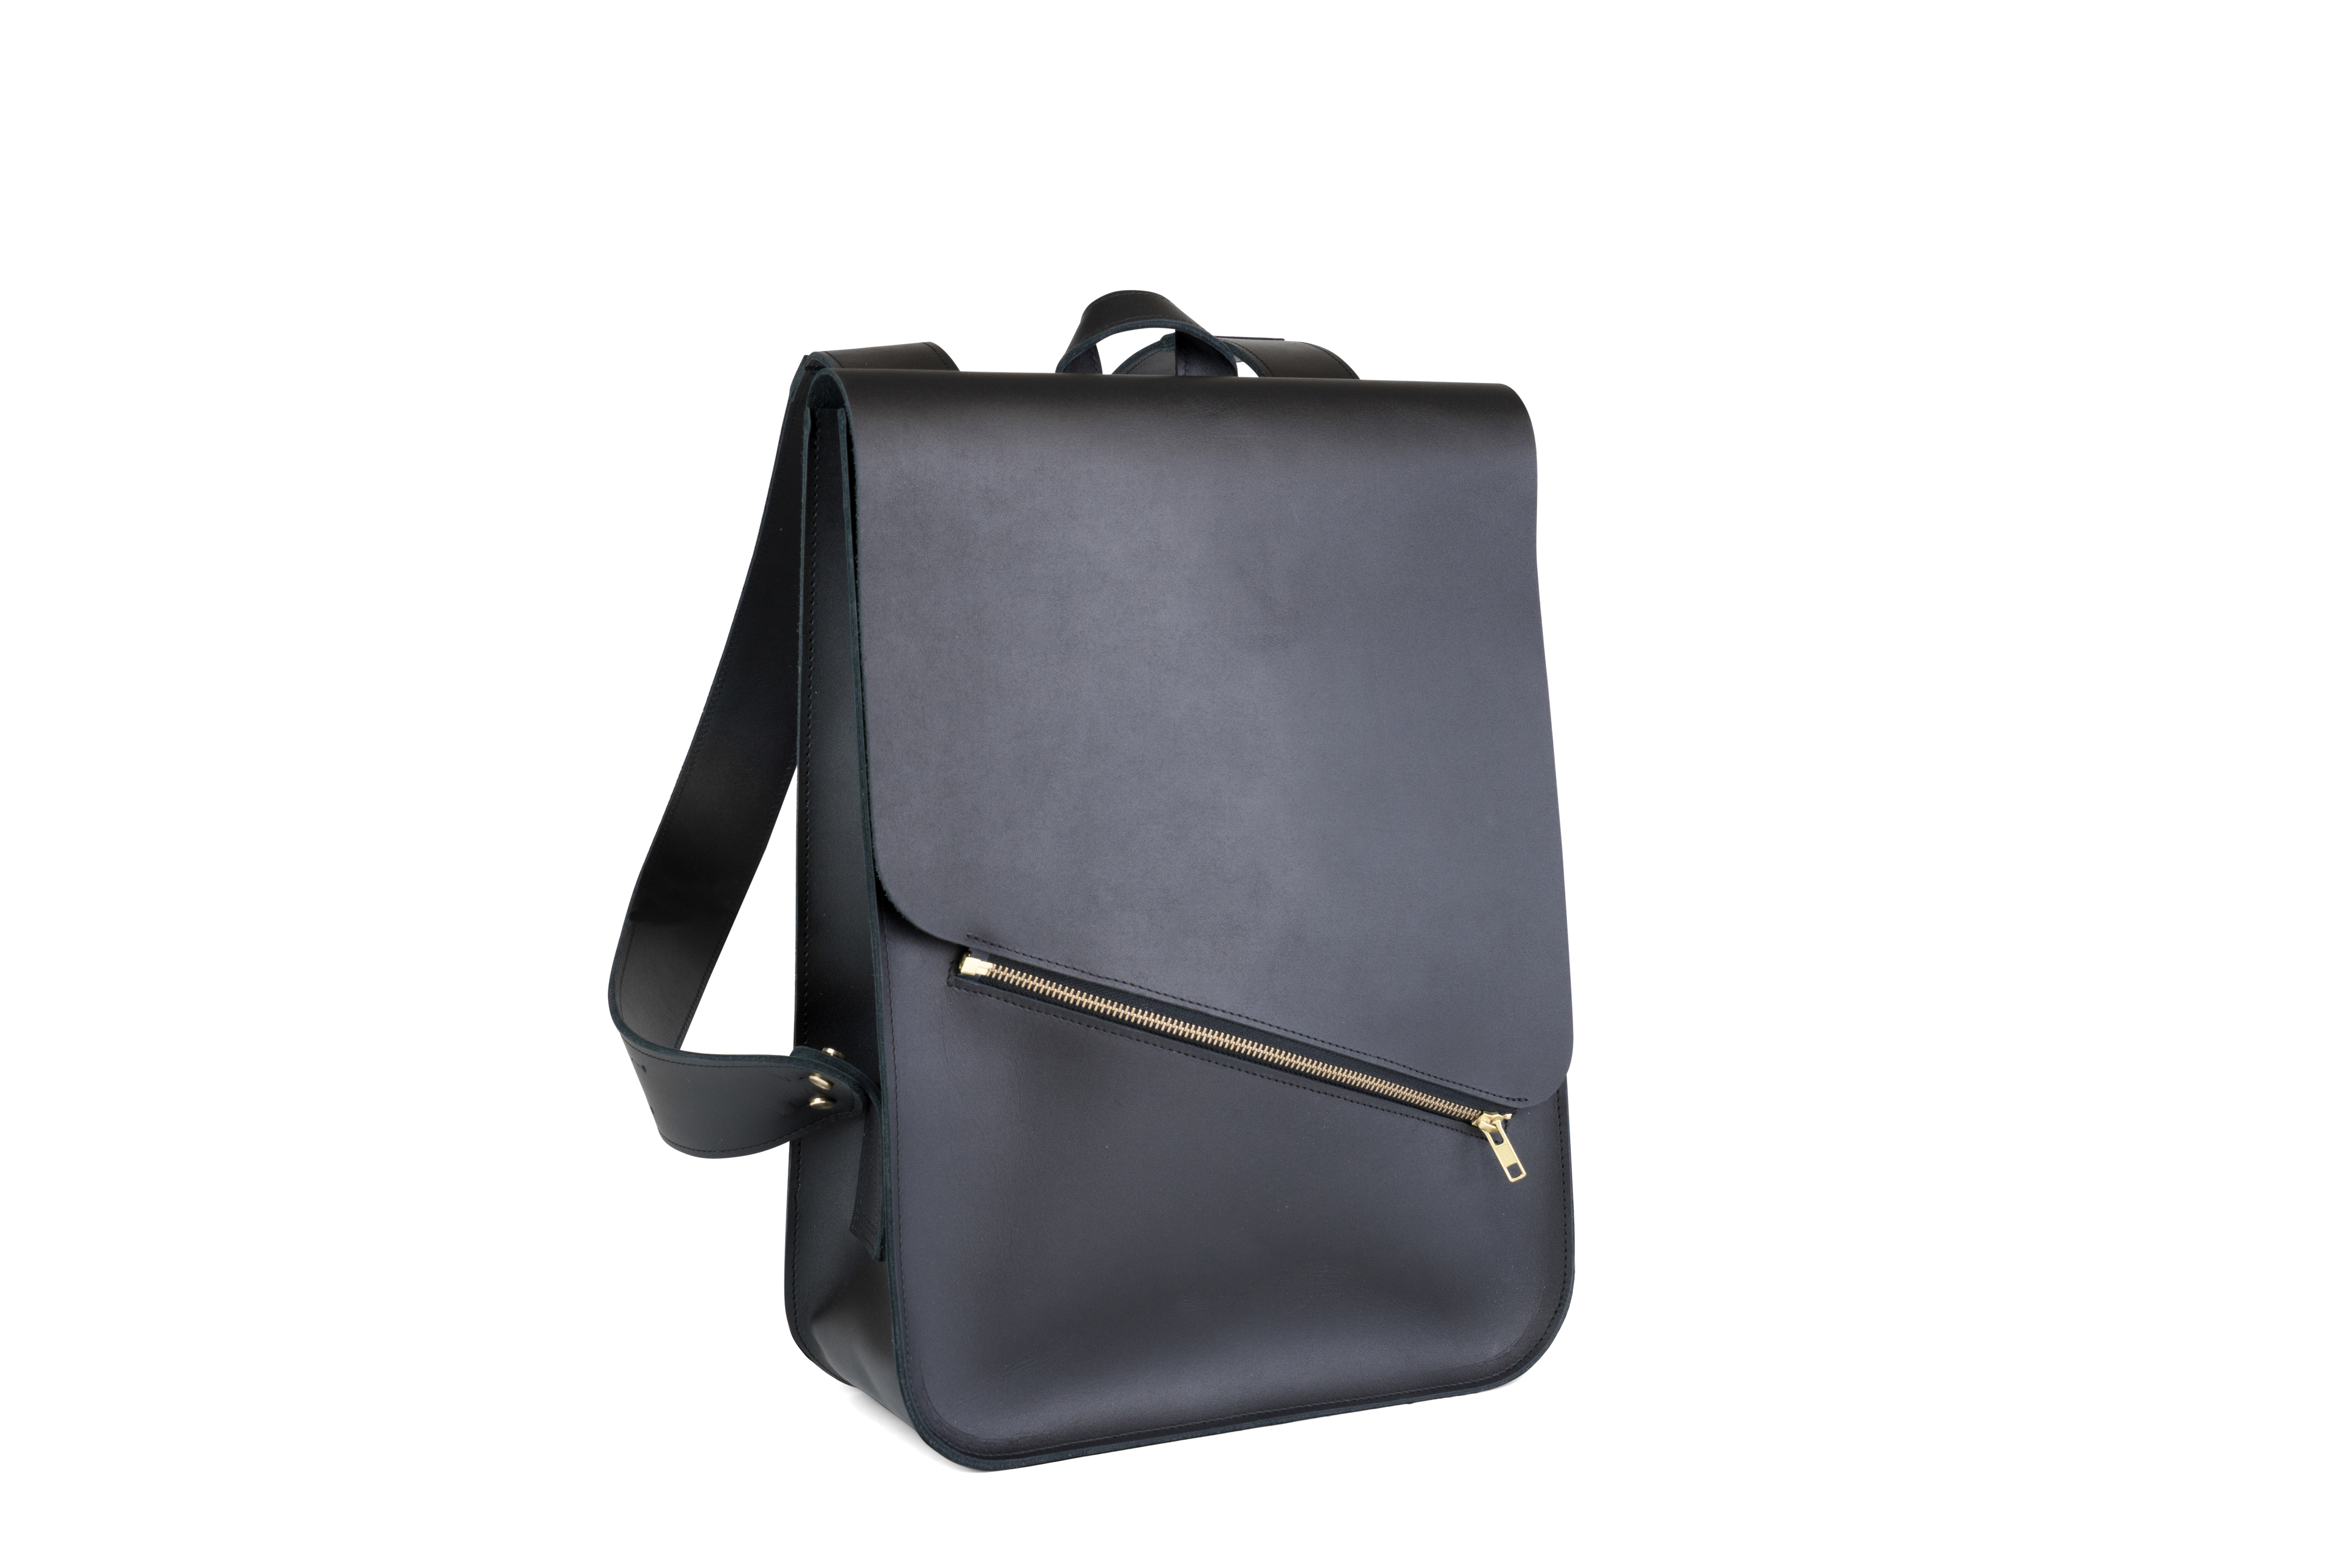 Zand_erover_Backpack_Medium_black3€369